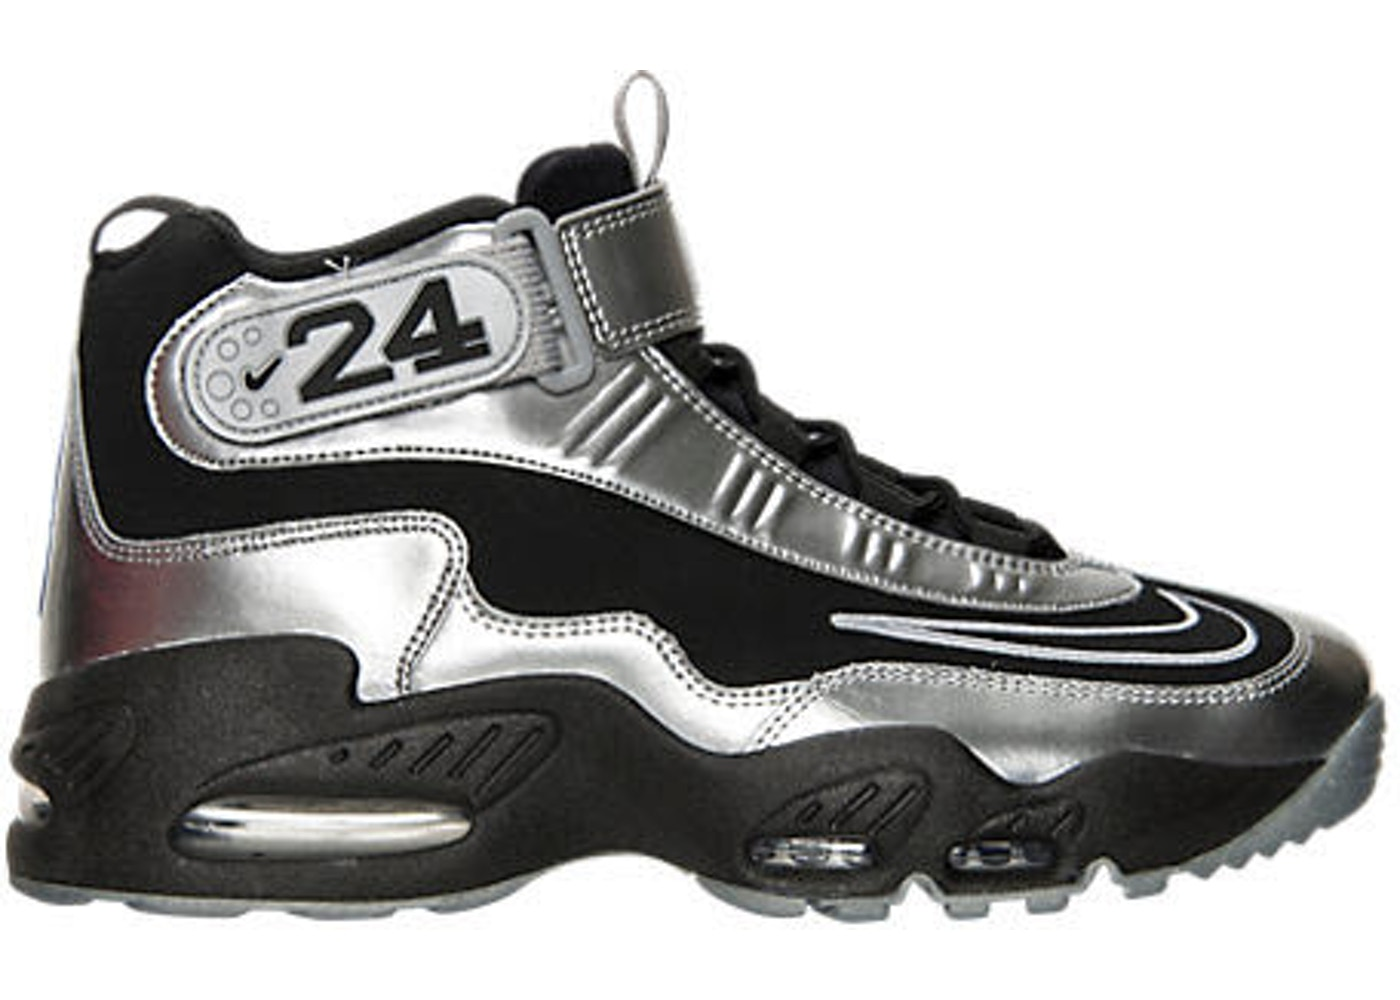 7912654798 Nike Air Griffey Max 1 Metallic Silver - 354912-011